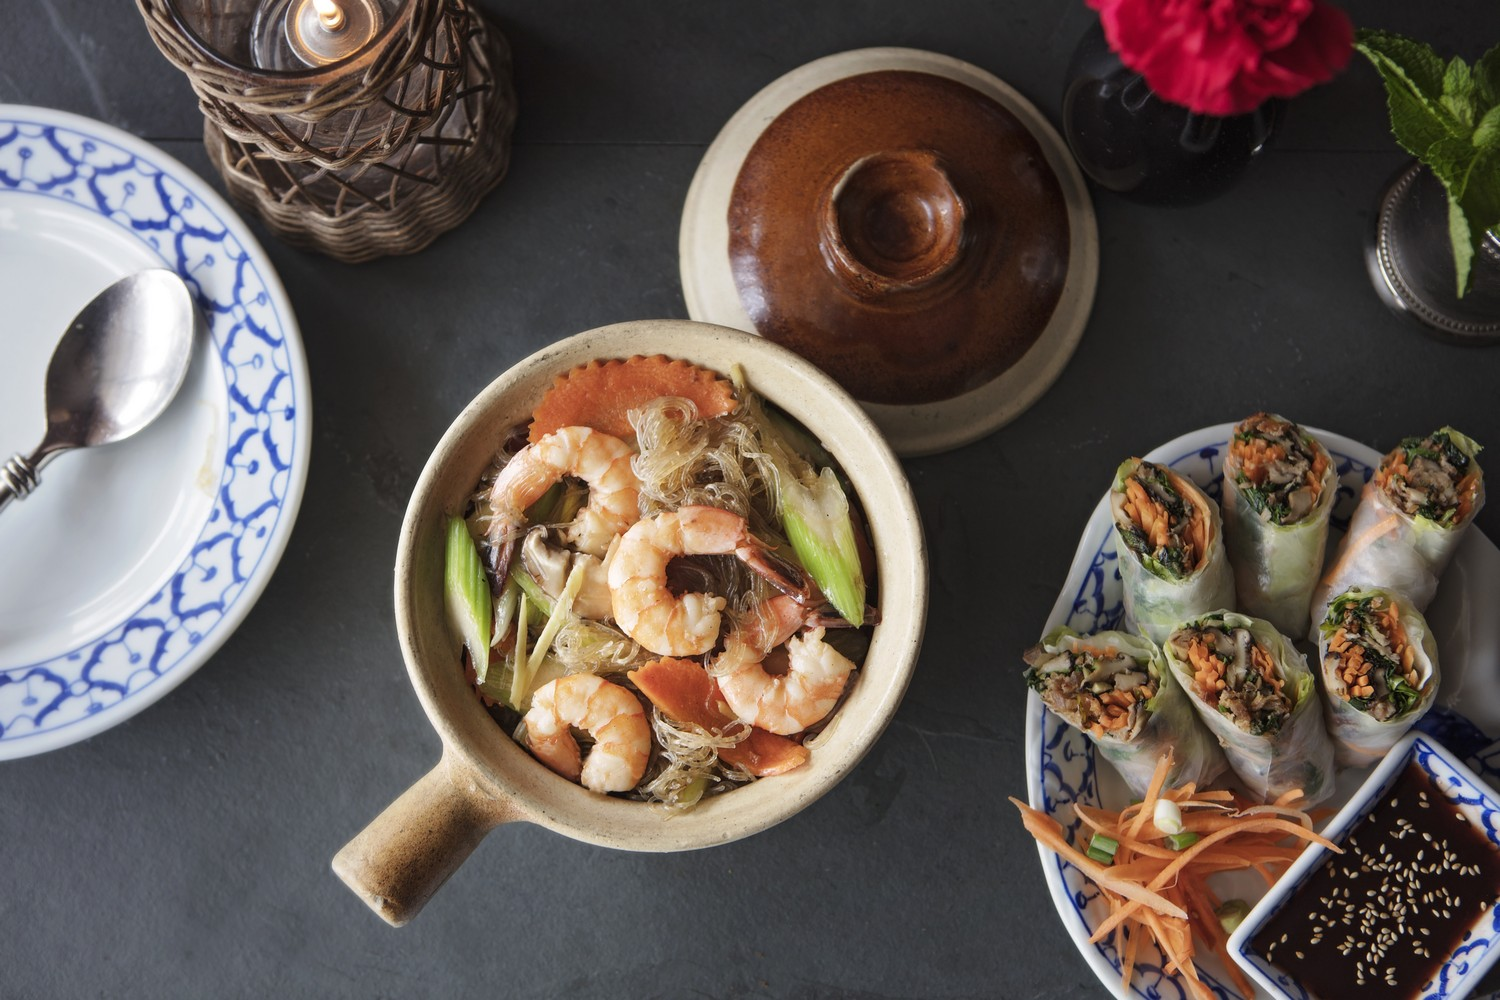 Shrimp-with-Glass-Noodles-Summer-Rolls-with-Roasted-Duck-resized